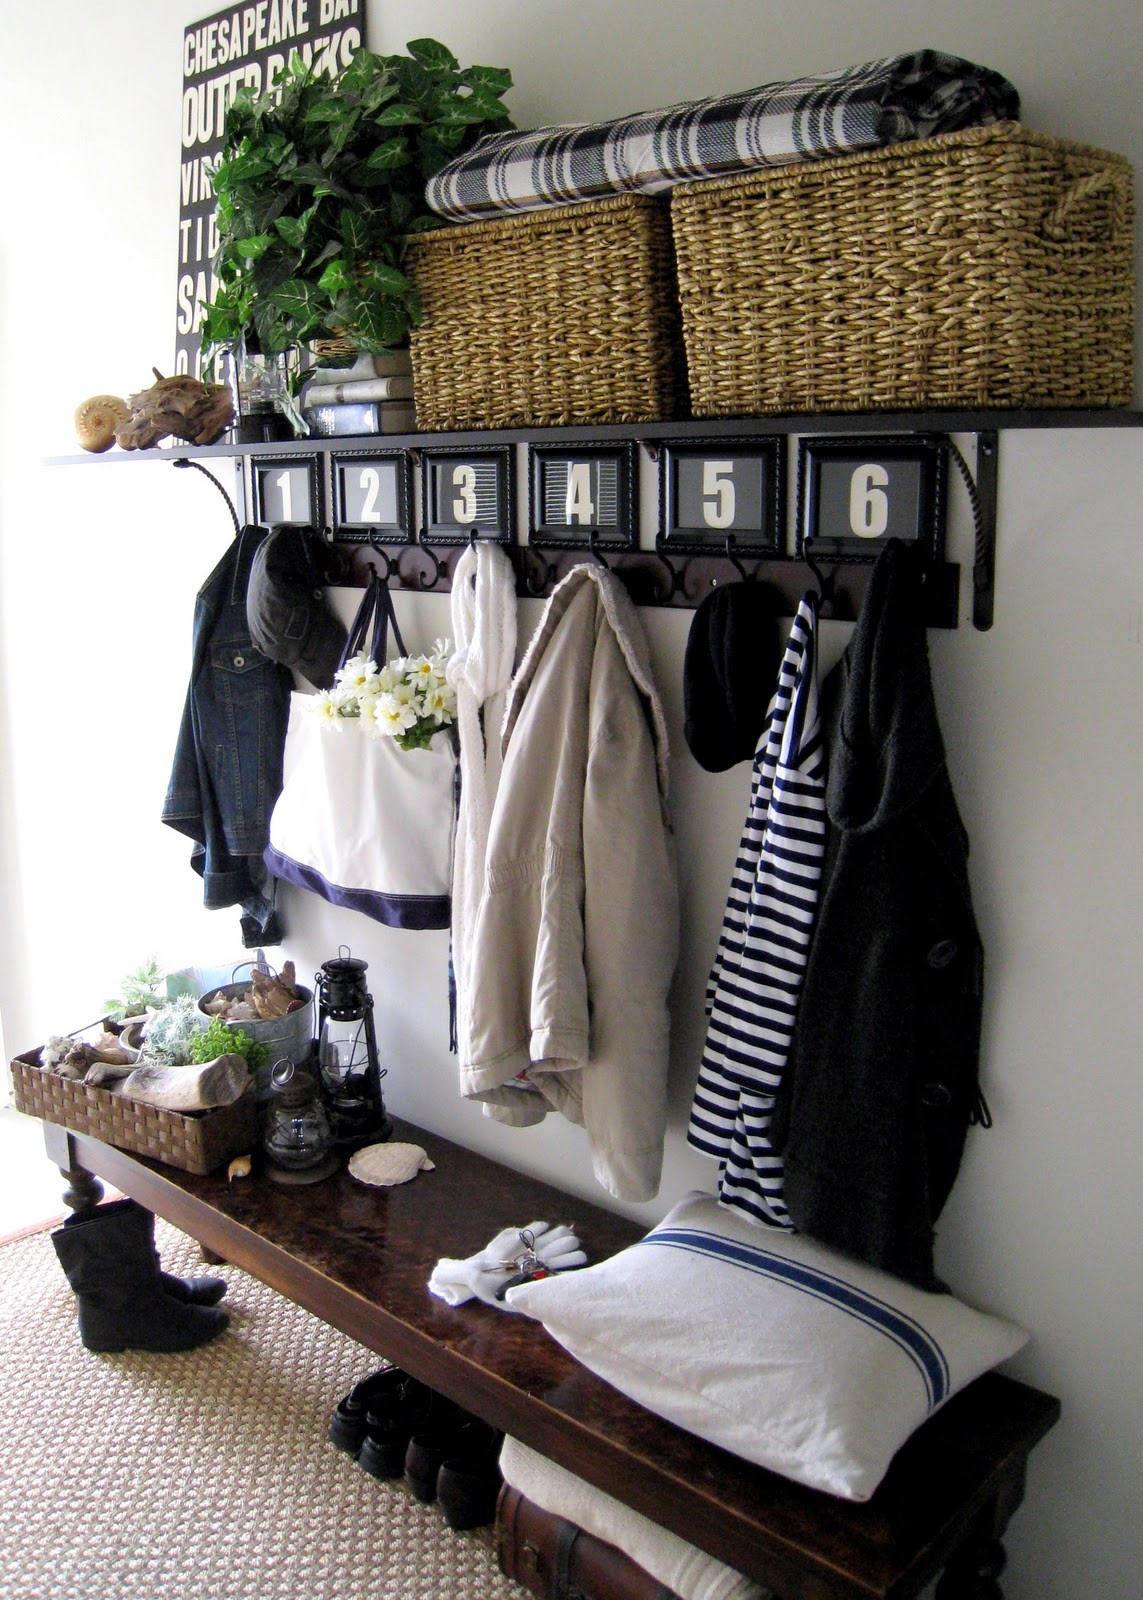 Best ideas about Entryway Bench With Hooks . Save or Pin 50 Entryway Bench Design Ideas to Try in Your Home Now.